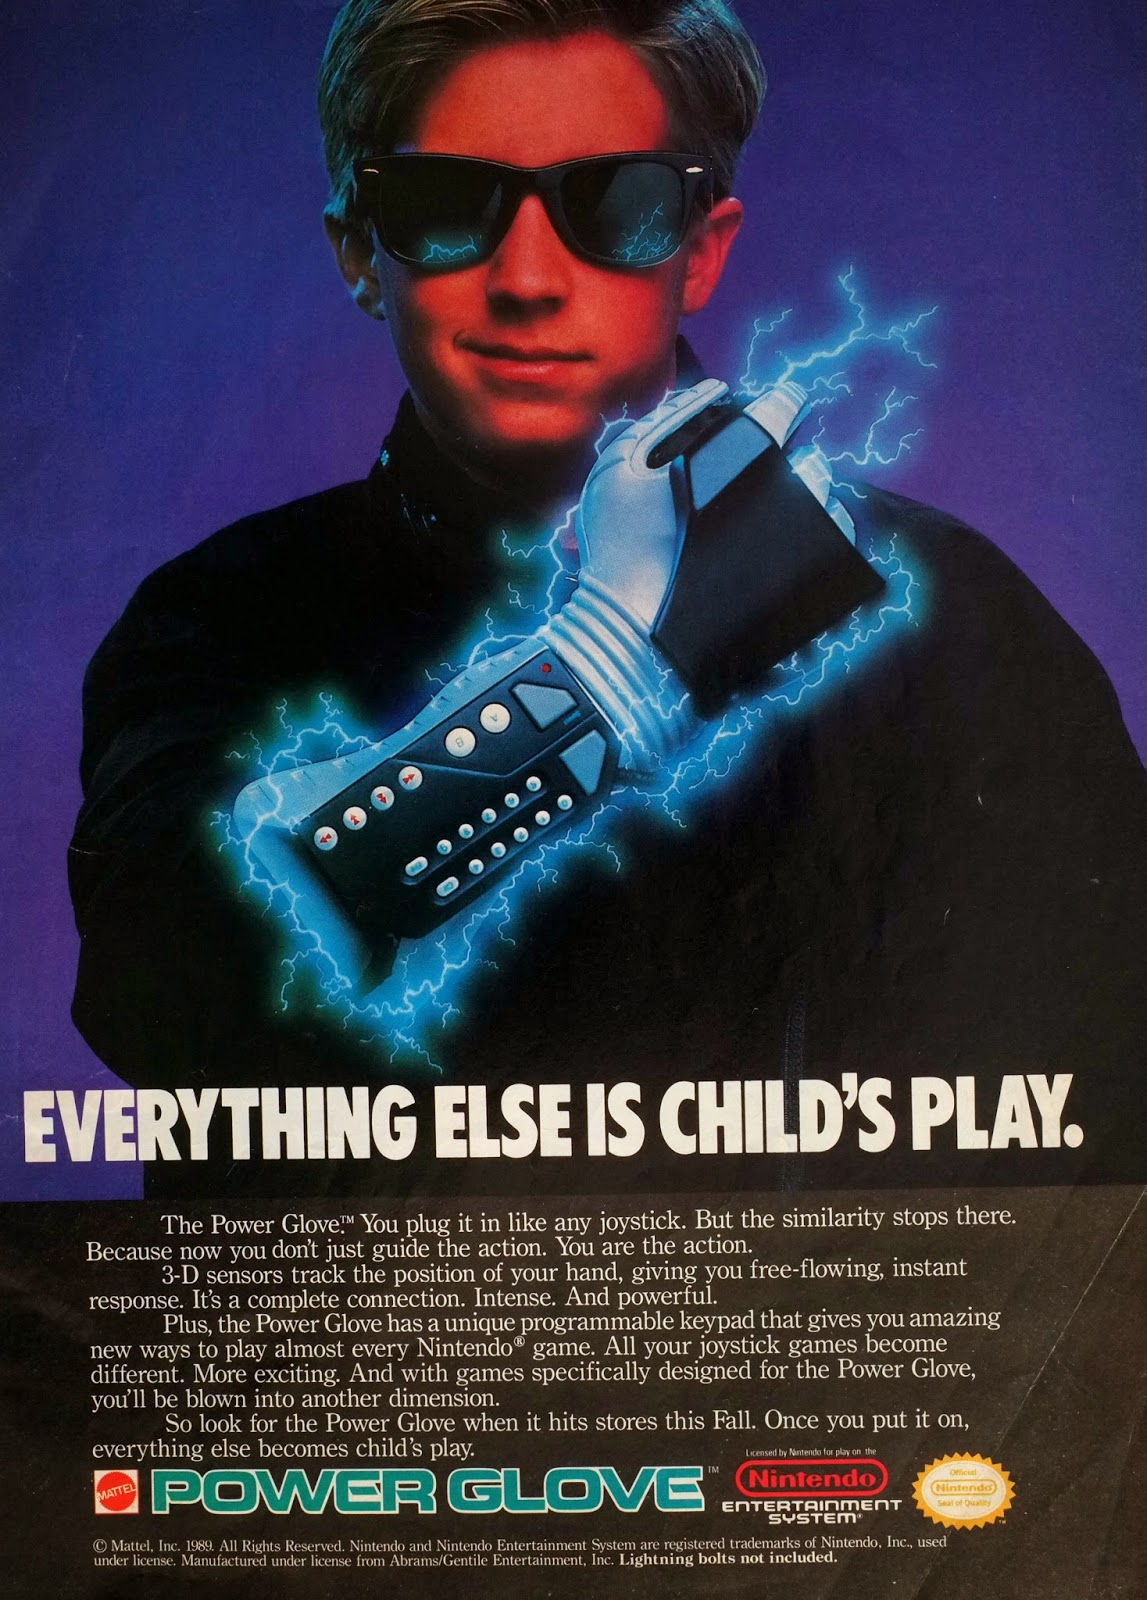 Nintendo Power Glove advertisement